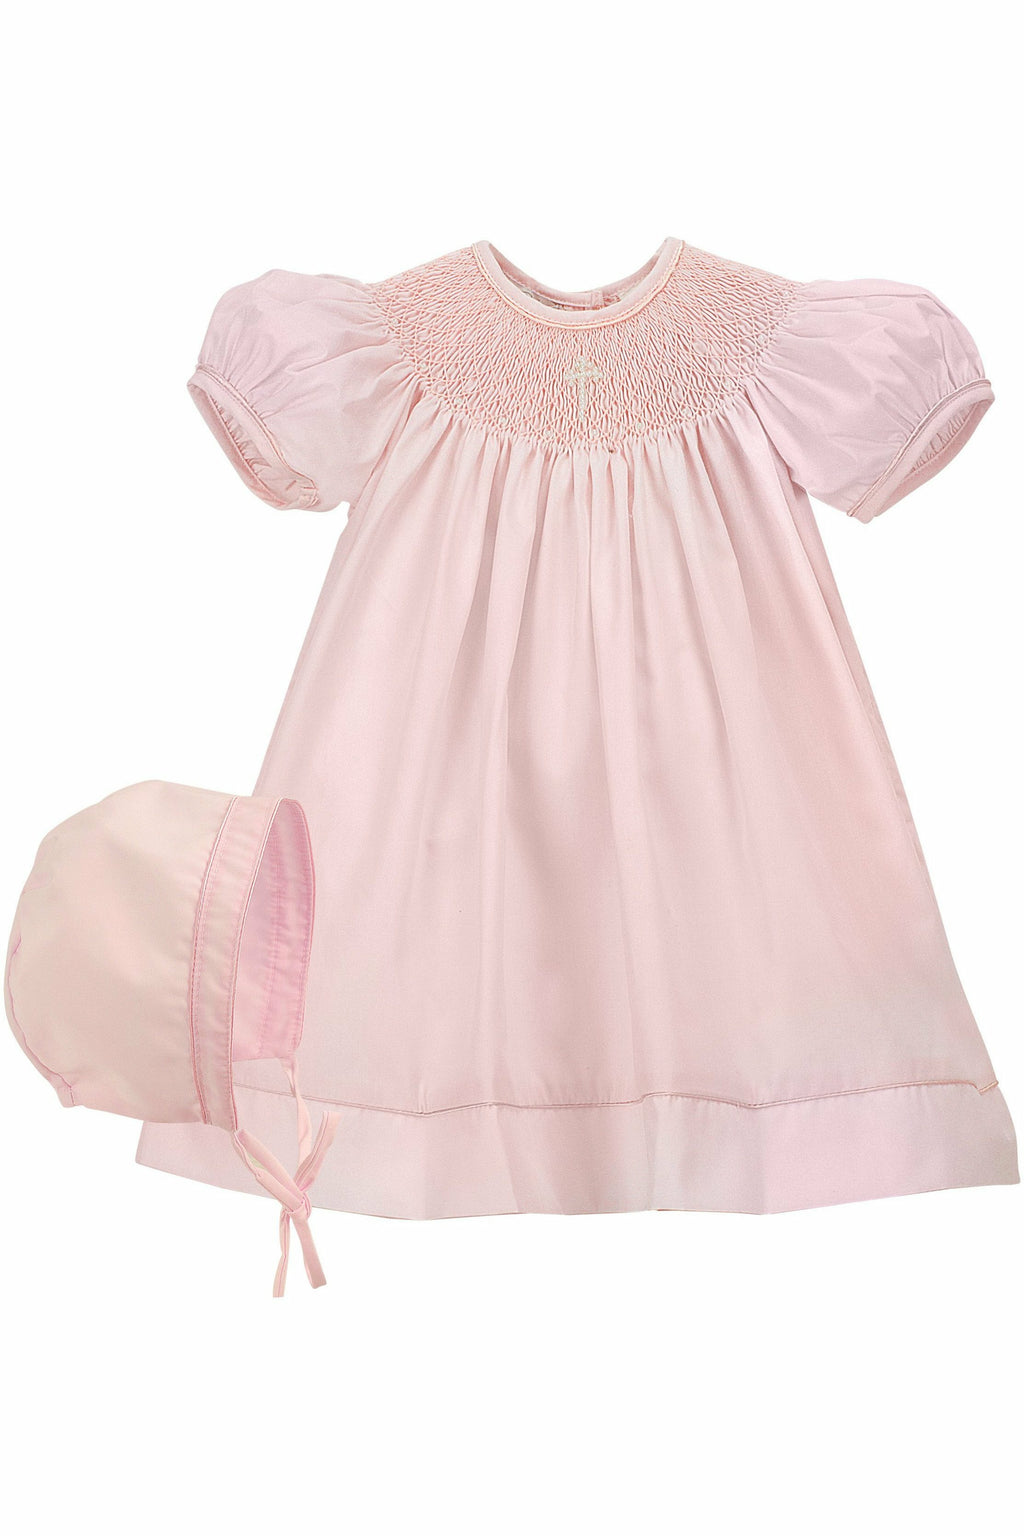 Baby Girls Hand Smocked Christening /Baptism Pearl Cross Bishop Dress with Bonnet - Pink